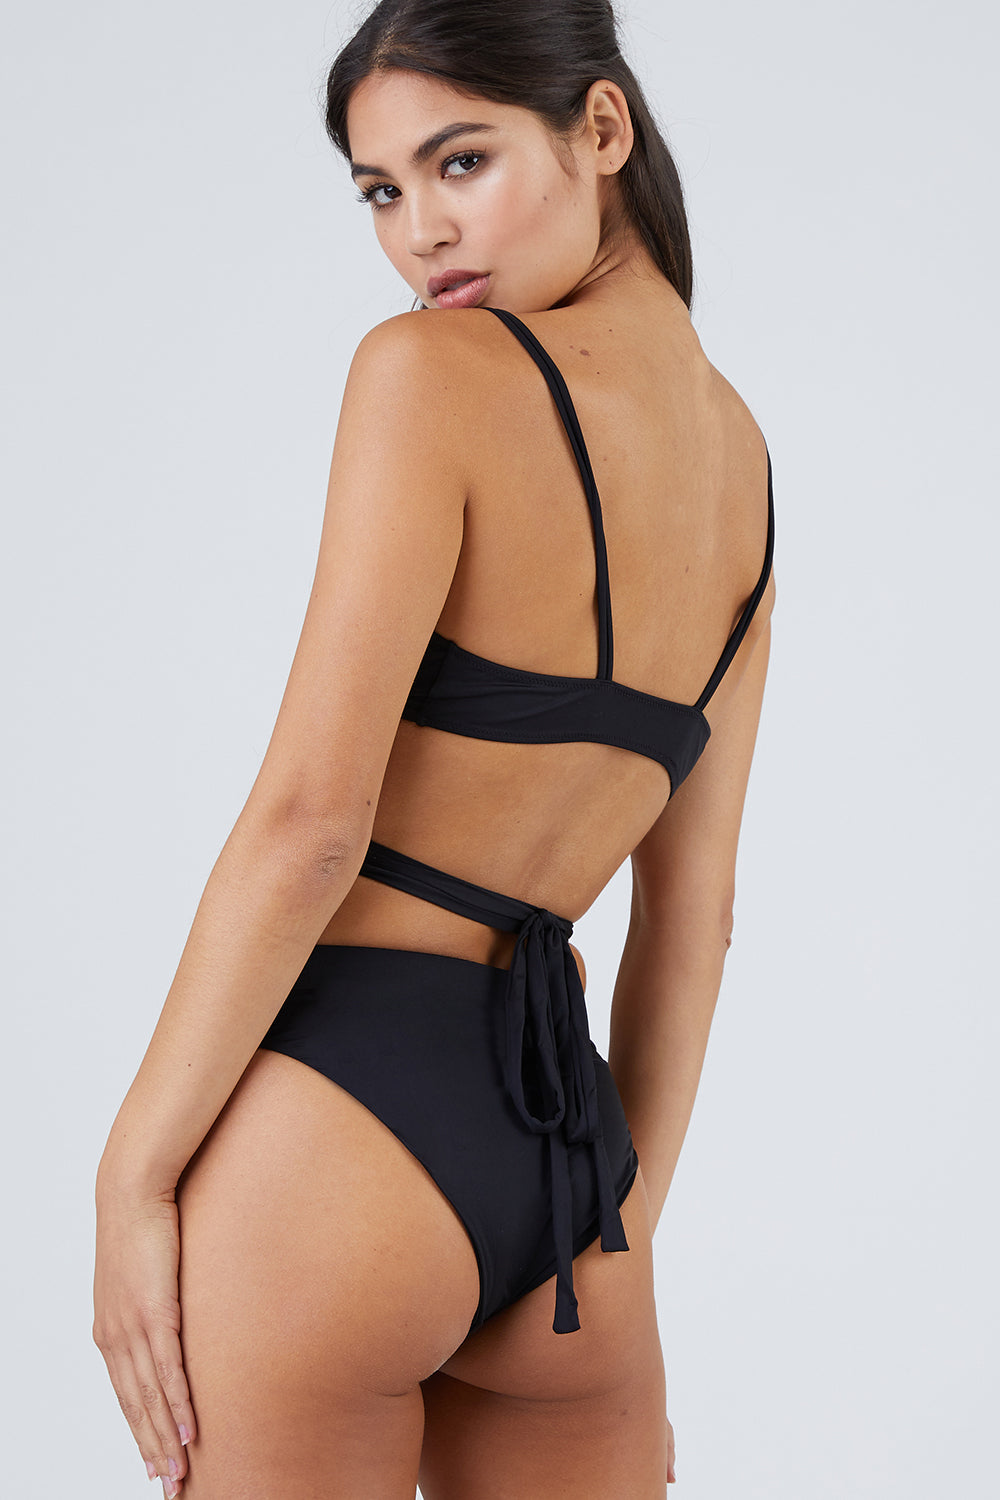 That 90's Vibe High Waisted Bikini Bottom - Black